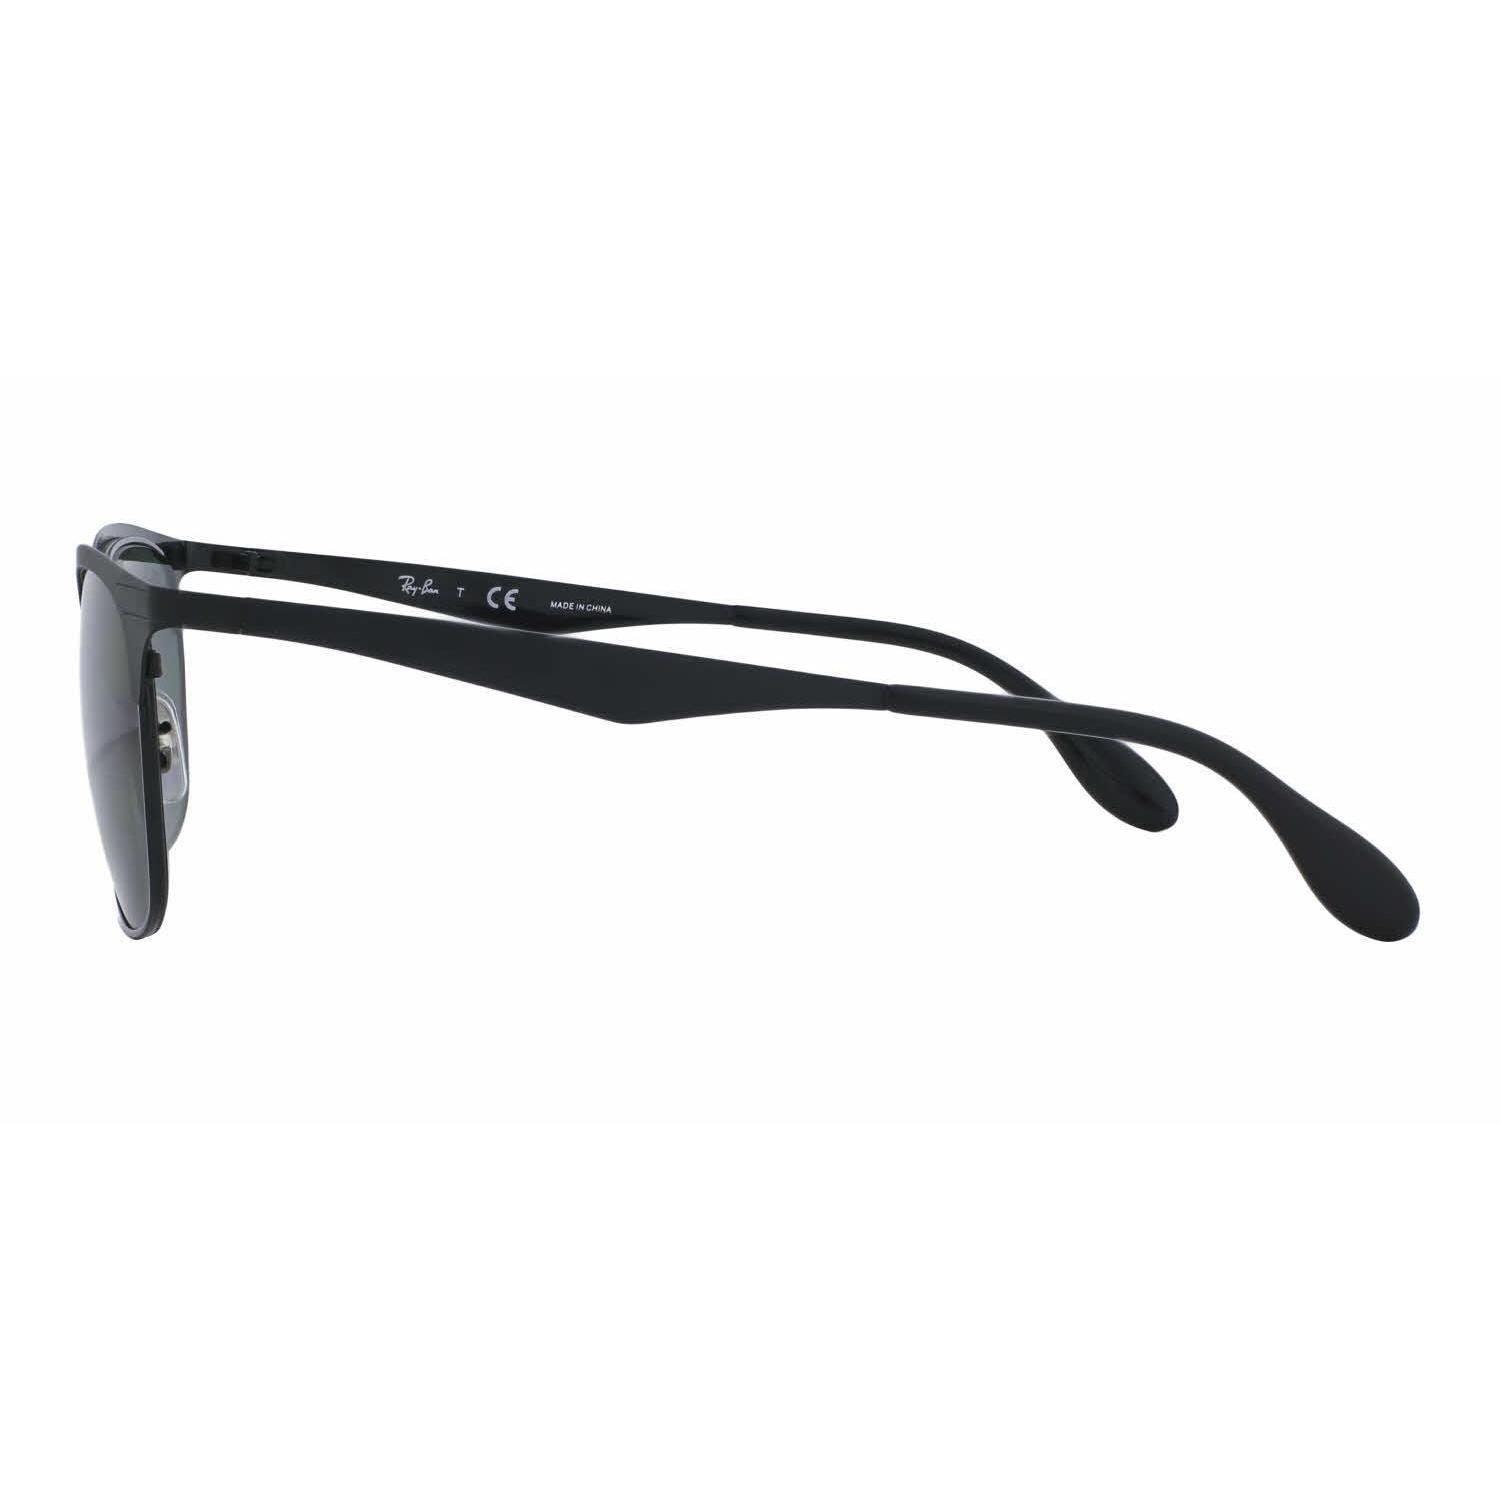 73ccc2433 Shop Ray Ban Women RB3538 186/71 Black Metal Square Sunglasses - Free  Shipping Today - Overstock - 13325469